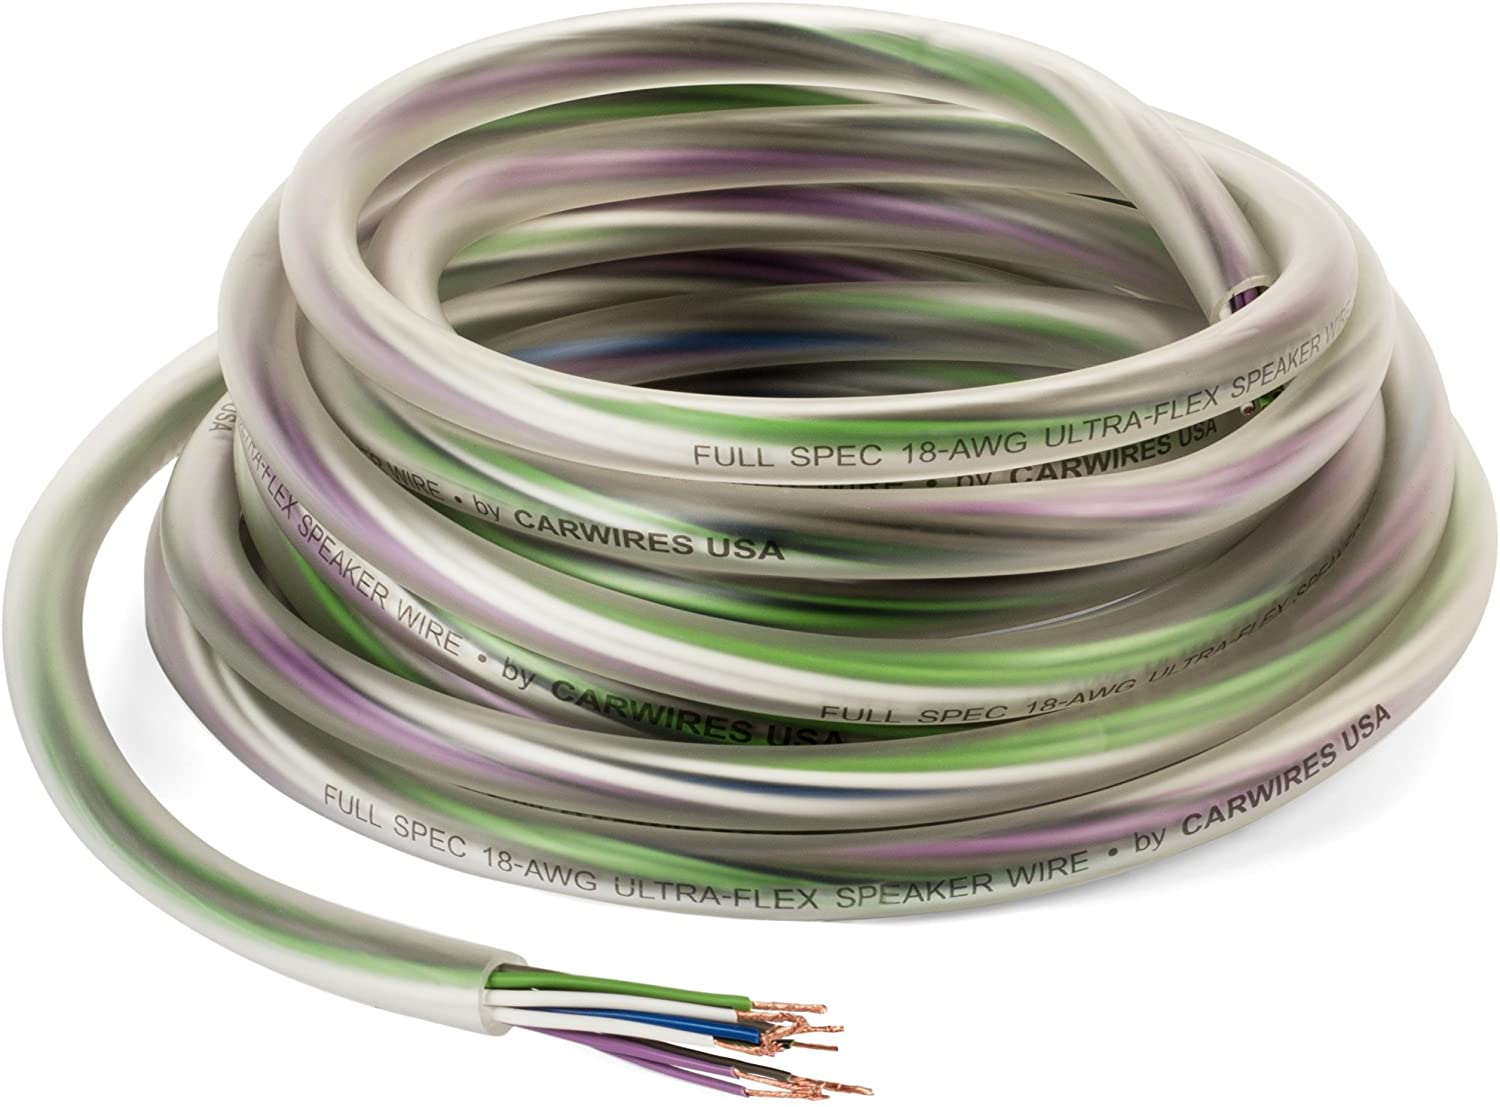 Carwires 9-AWG 9 Wire Car Speaker Wire (9 Feet / 9.9 Meters) True Spec,  Soft Touch Color-Coded Cable with Polarity Markings. Great for Car Speaker